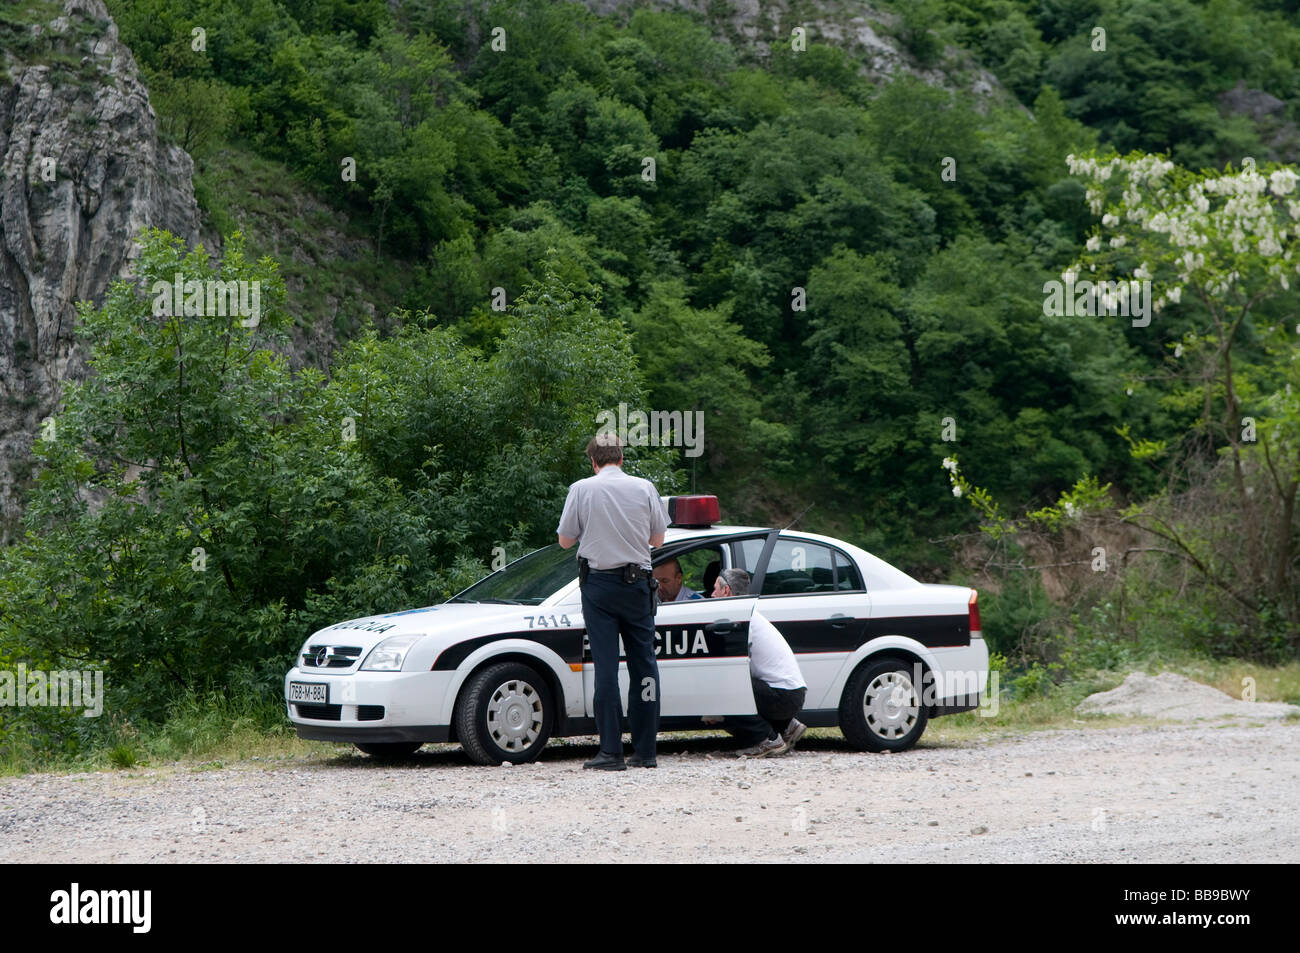 Policemen checking documents of a driver in a police patrol car in Bosnia Herzegovina - Stock Image